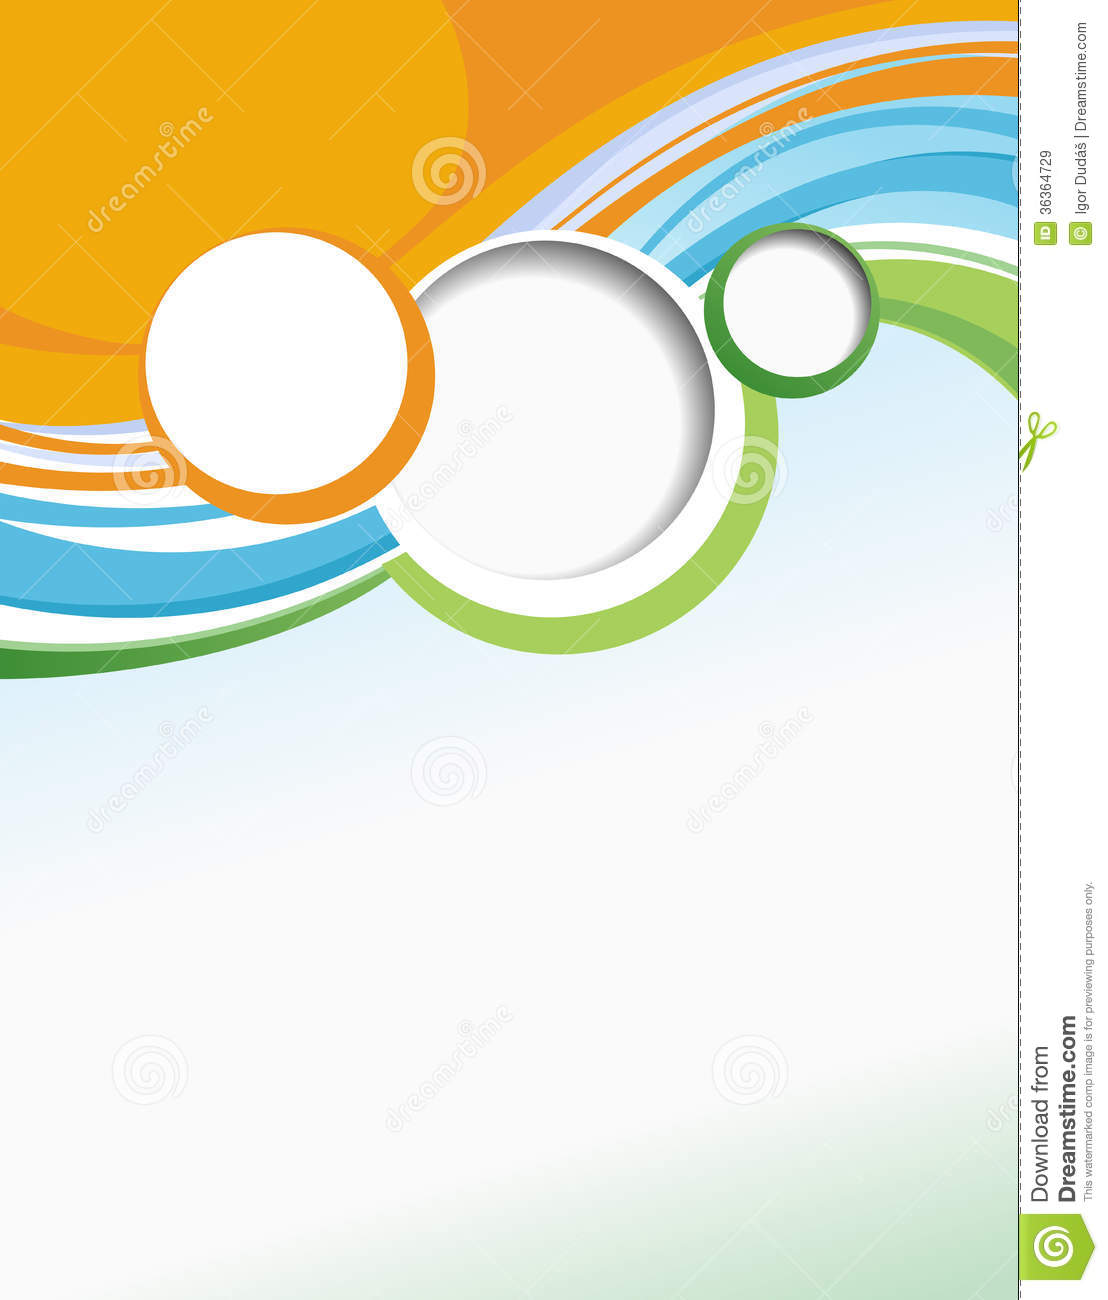 business brochure template stock illustration illustration of curve